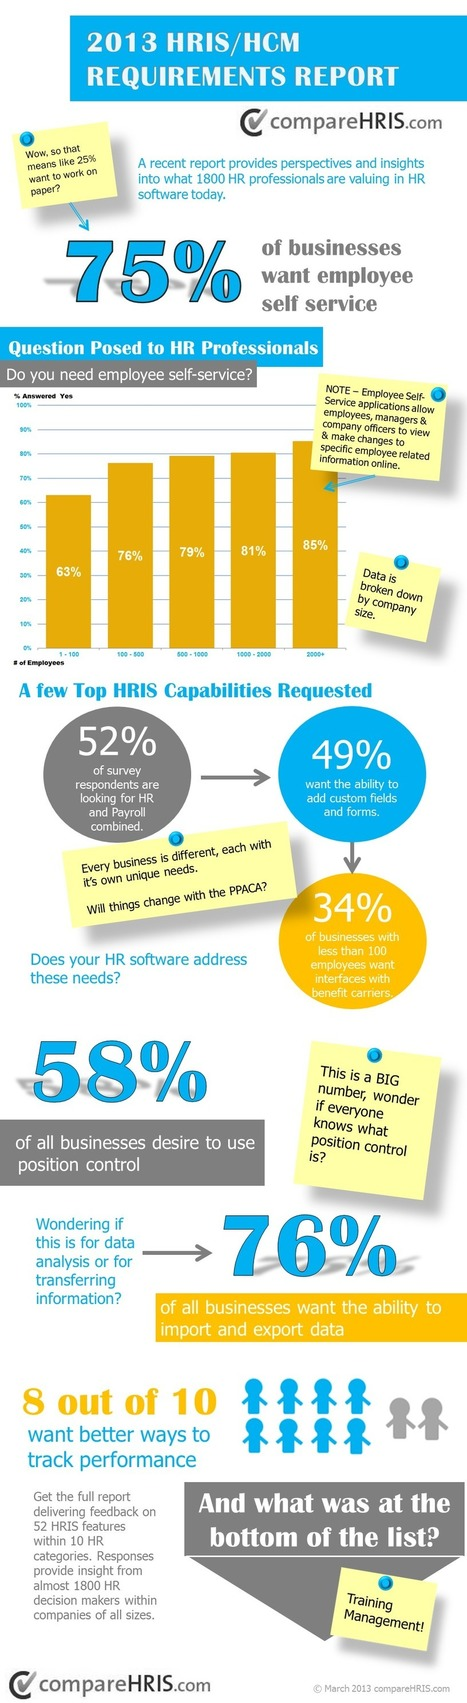 1800 HR Decision-Makers Reveal What They Want in HR Software   HRTech   Scoop.it